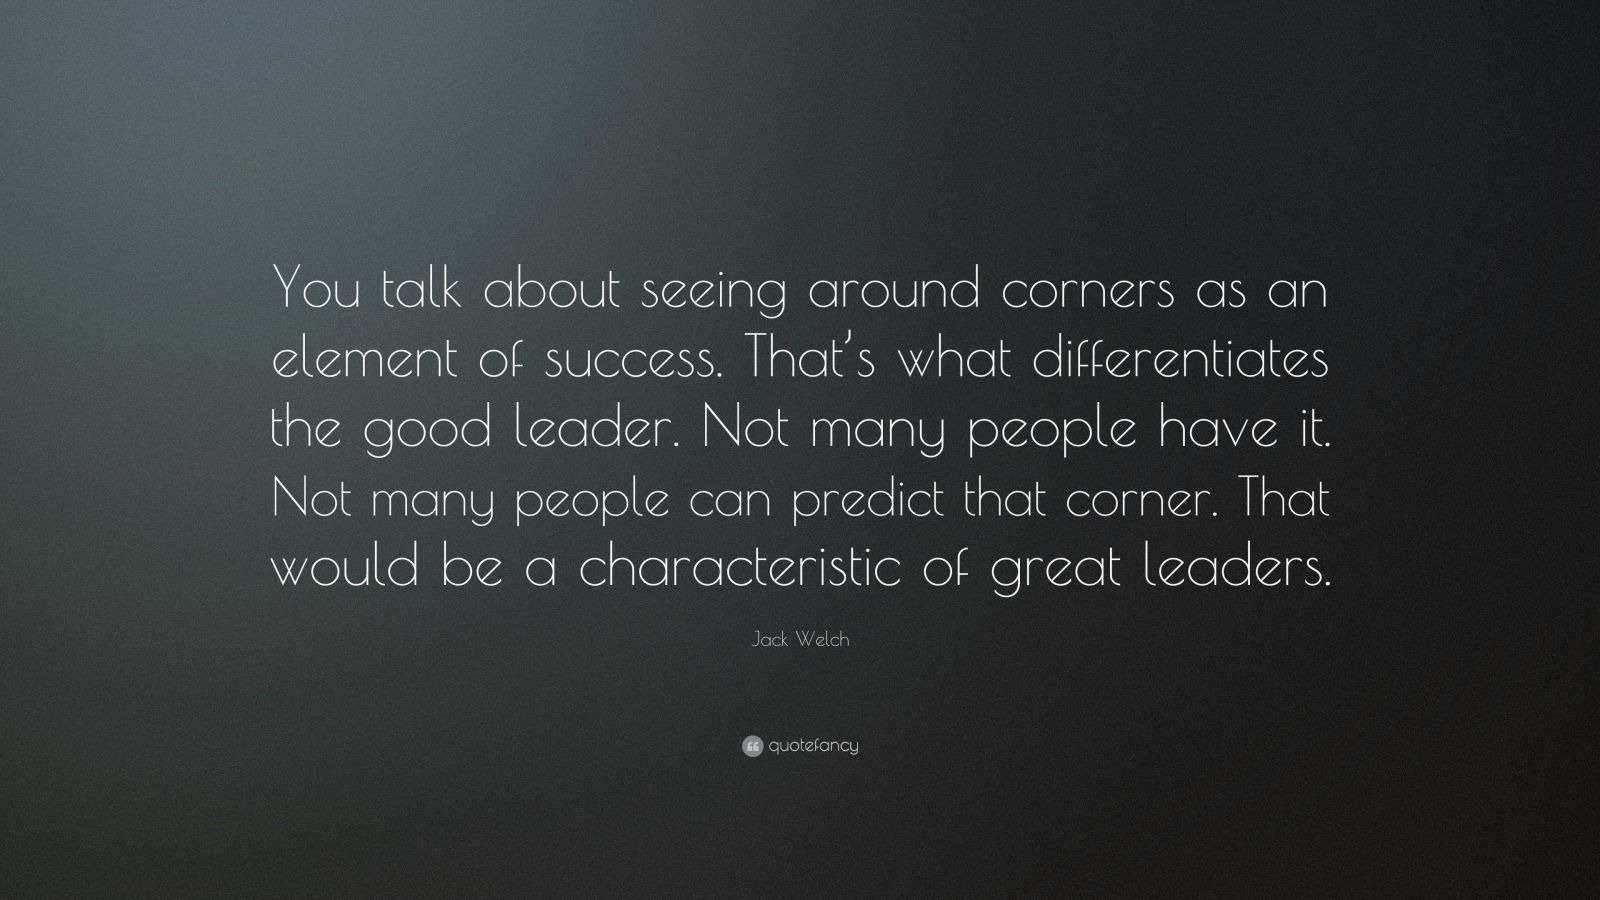 """Jack Welch Quote: """"You talk about seeing around corners as an element of success. That's what differentiates the good leader. Not many people have it. Not many people can predict that corner. That would be a characteristic of great leaders."""""""